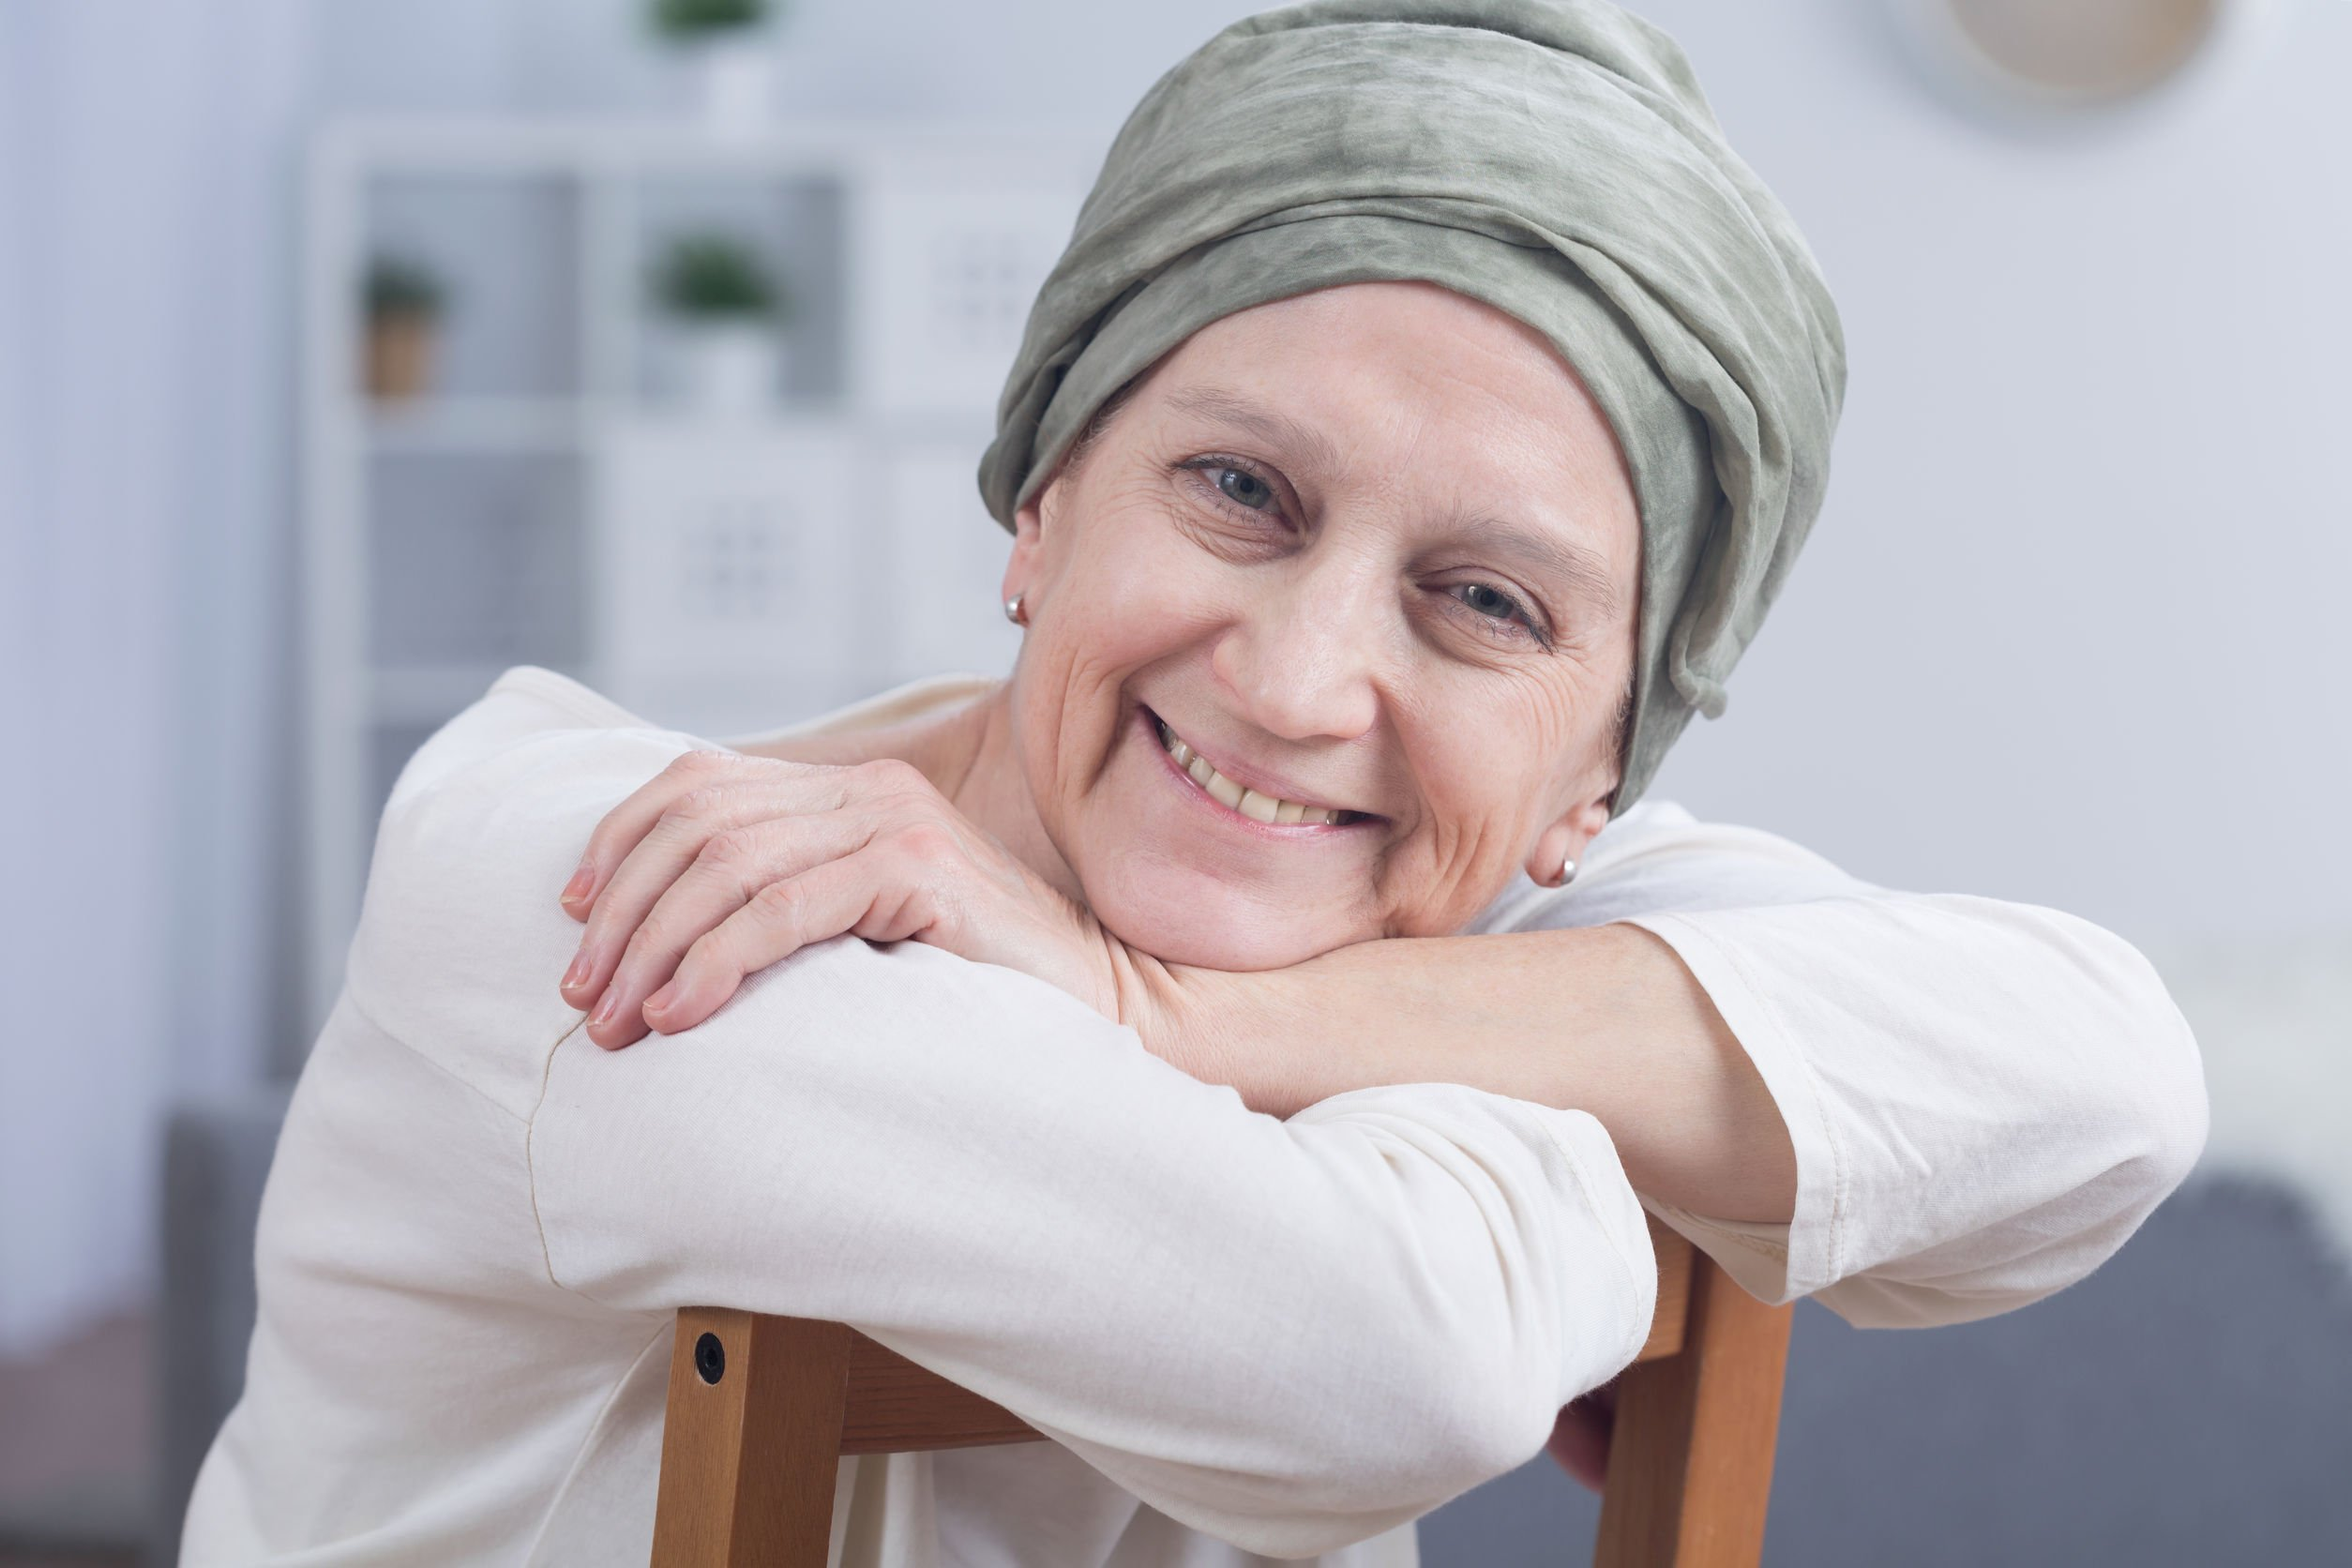 cancer survivor sitting in a chair smiling with a head scarf